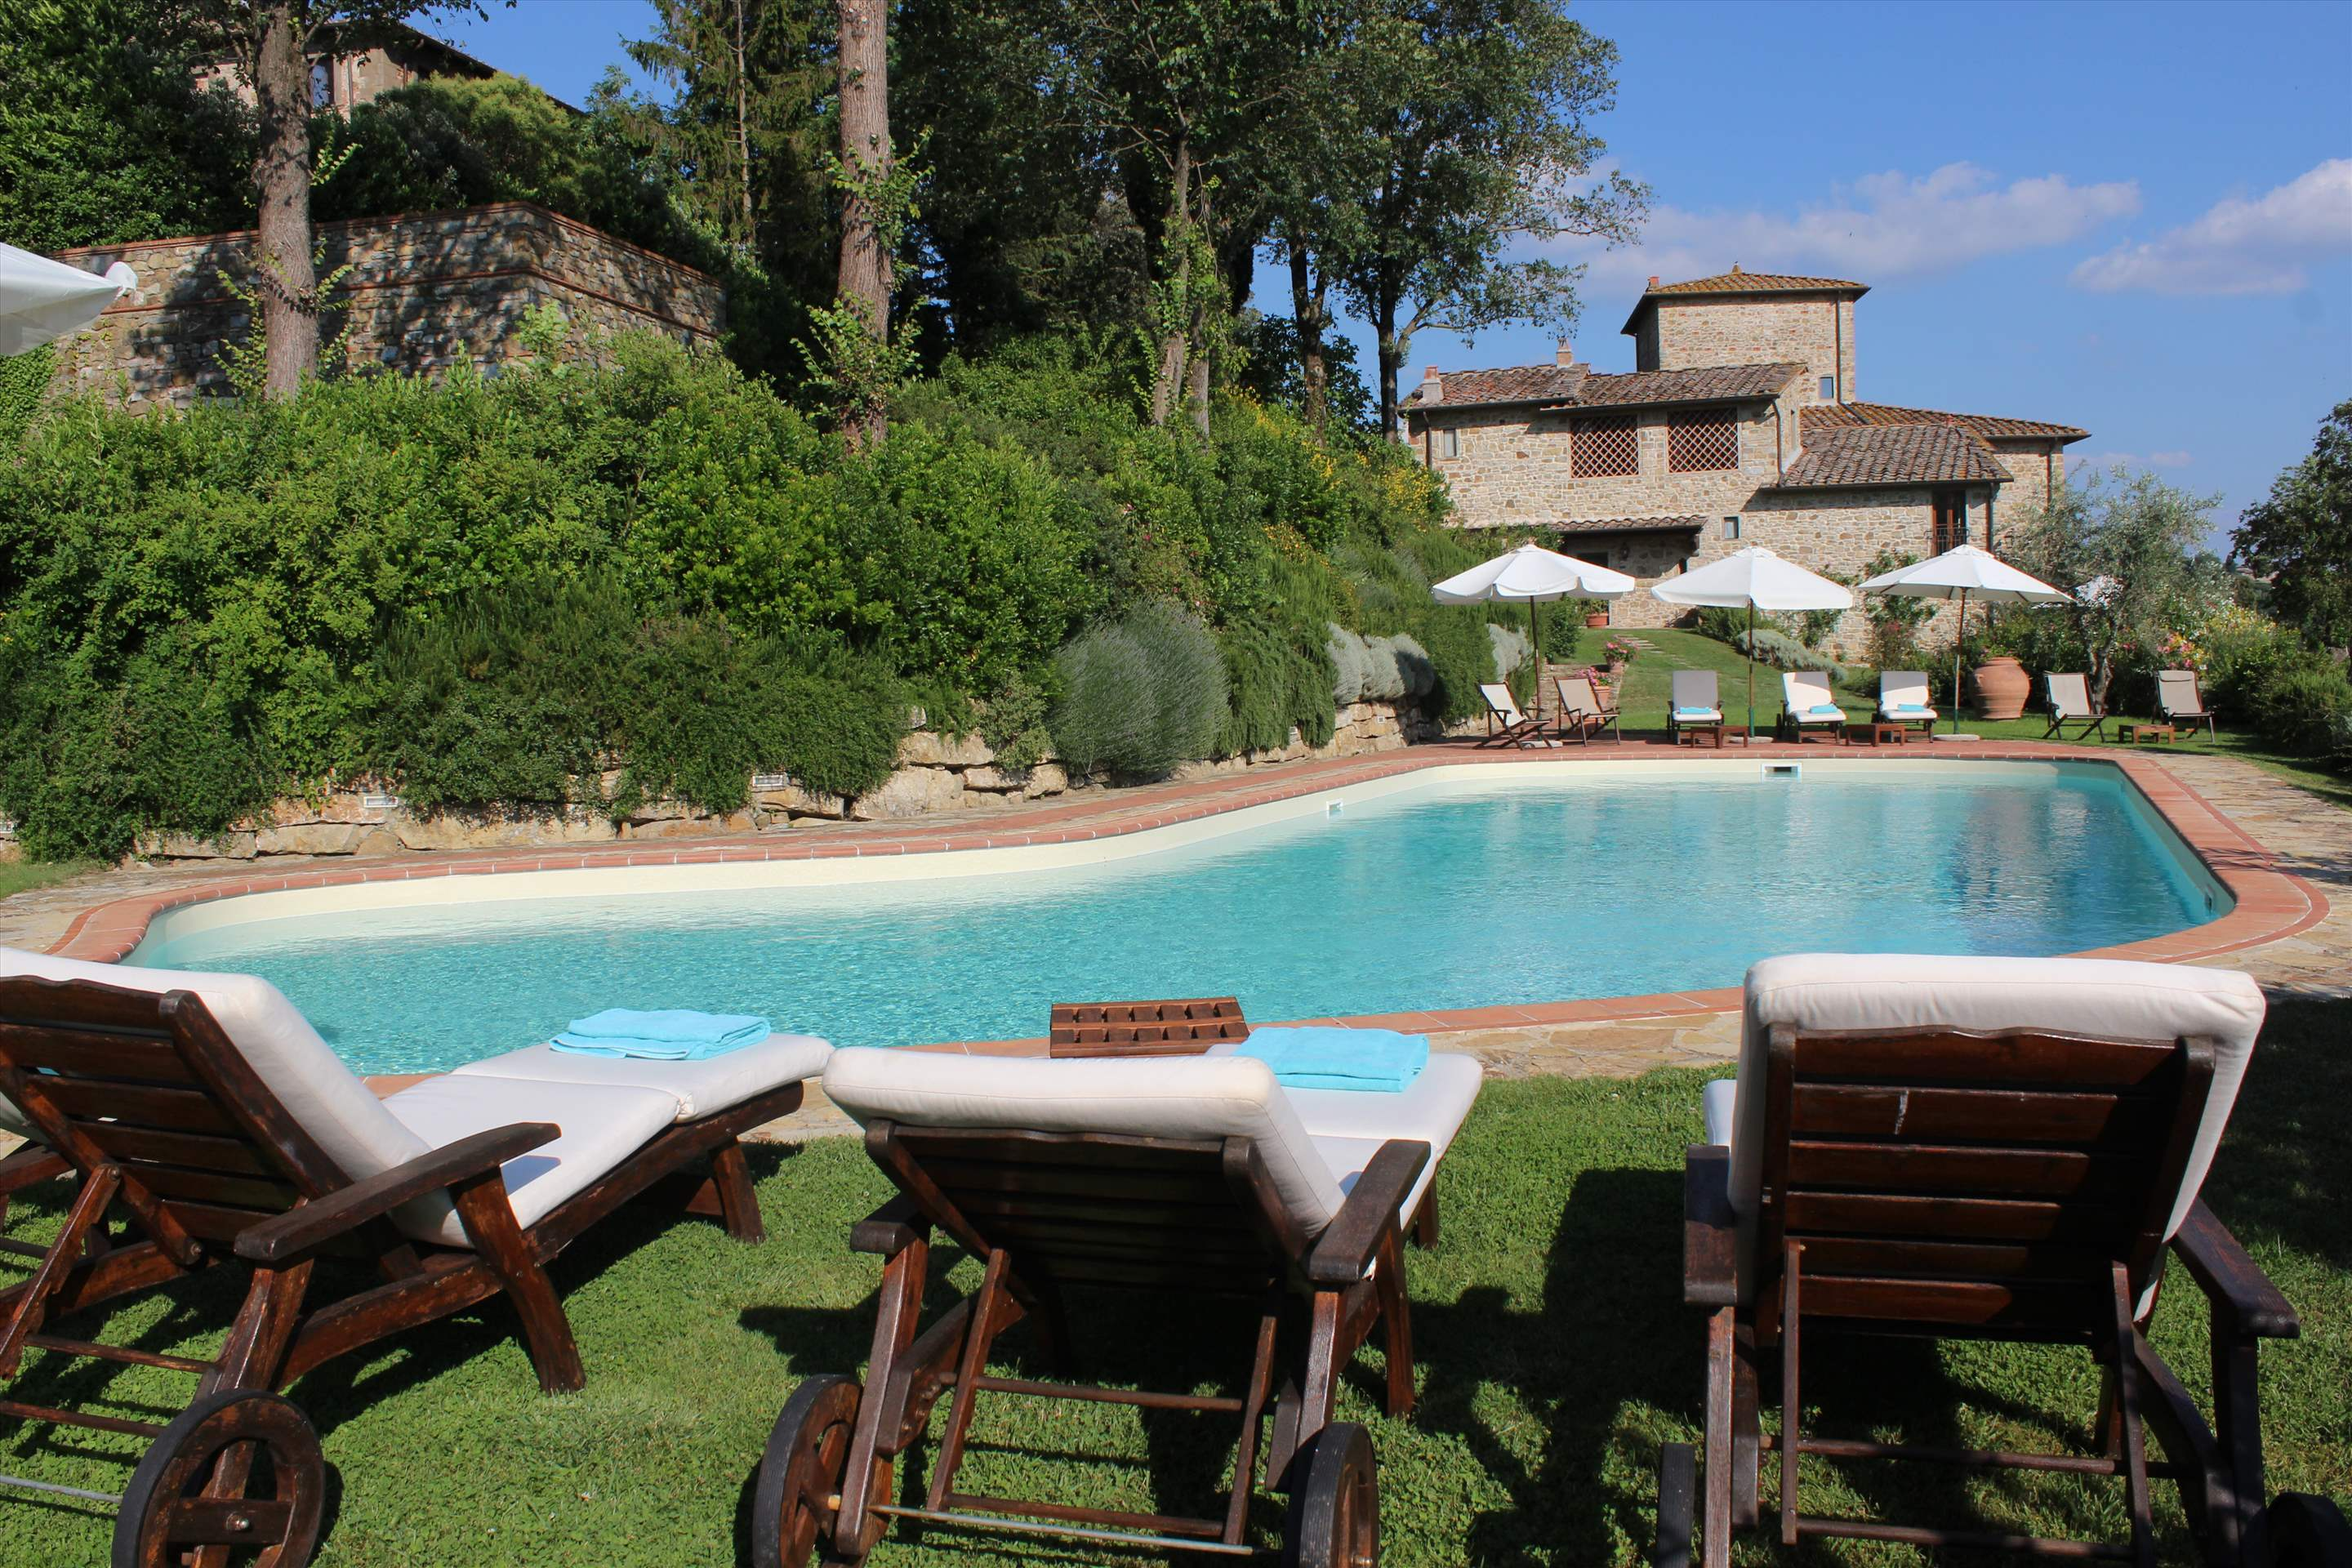 Apartment Limonaia, 1 bedroom apartment in Chianti & Countryside, Tuscany